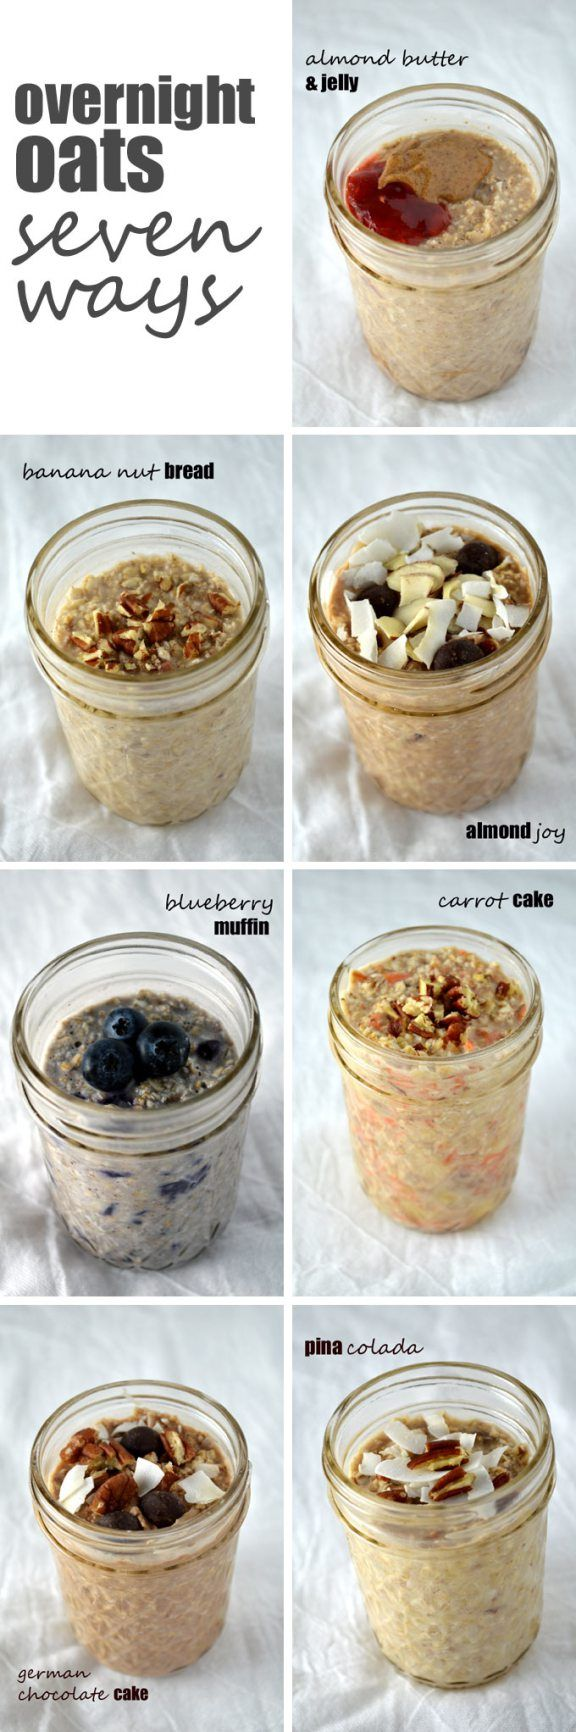 1/2c oats, 1/2c liquid, 1/2 mashed banana, 1T almond butter, 1T jam, 1/2t maple syrup